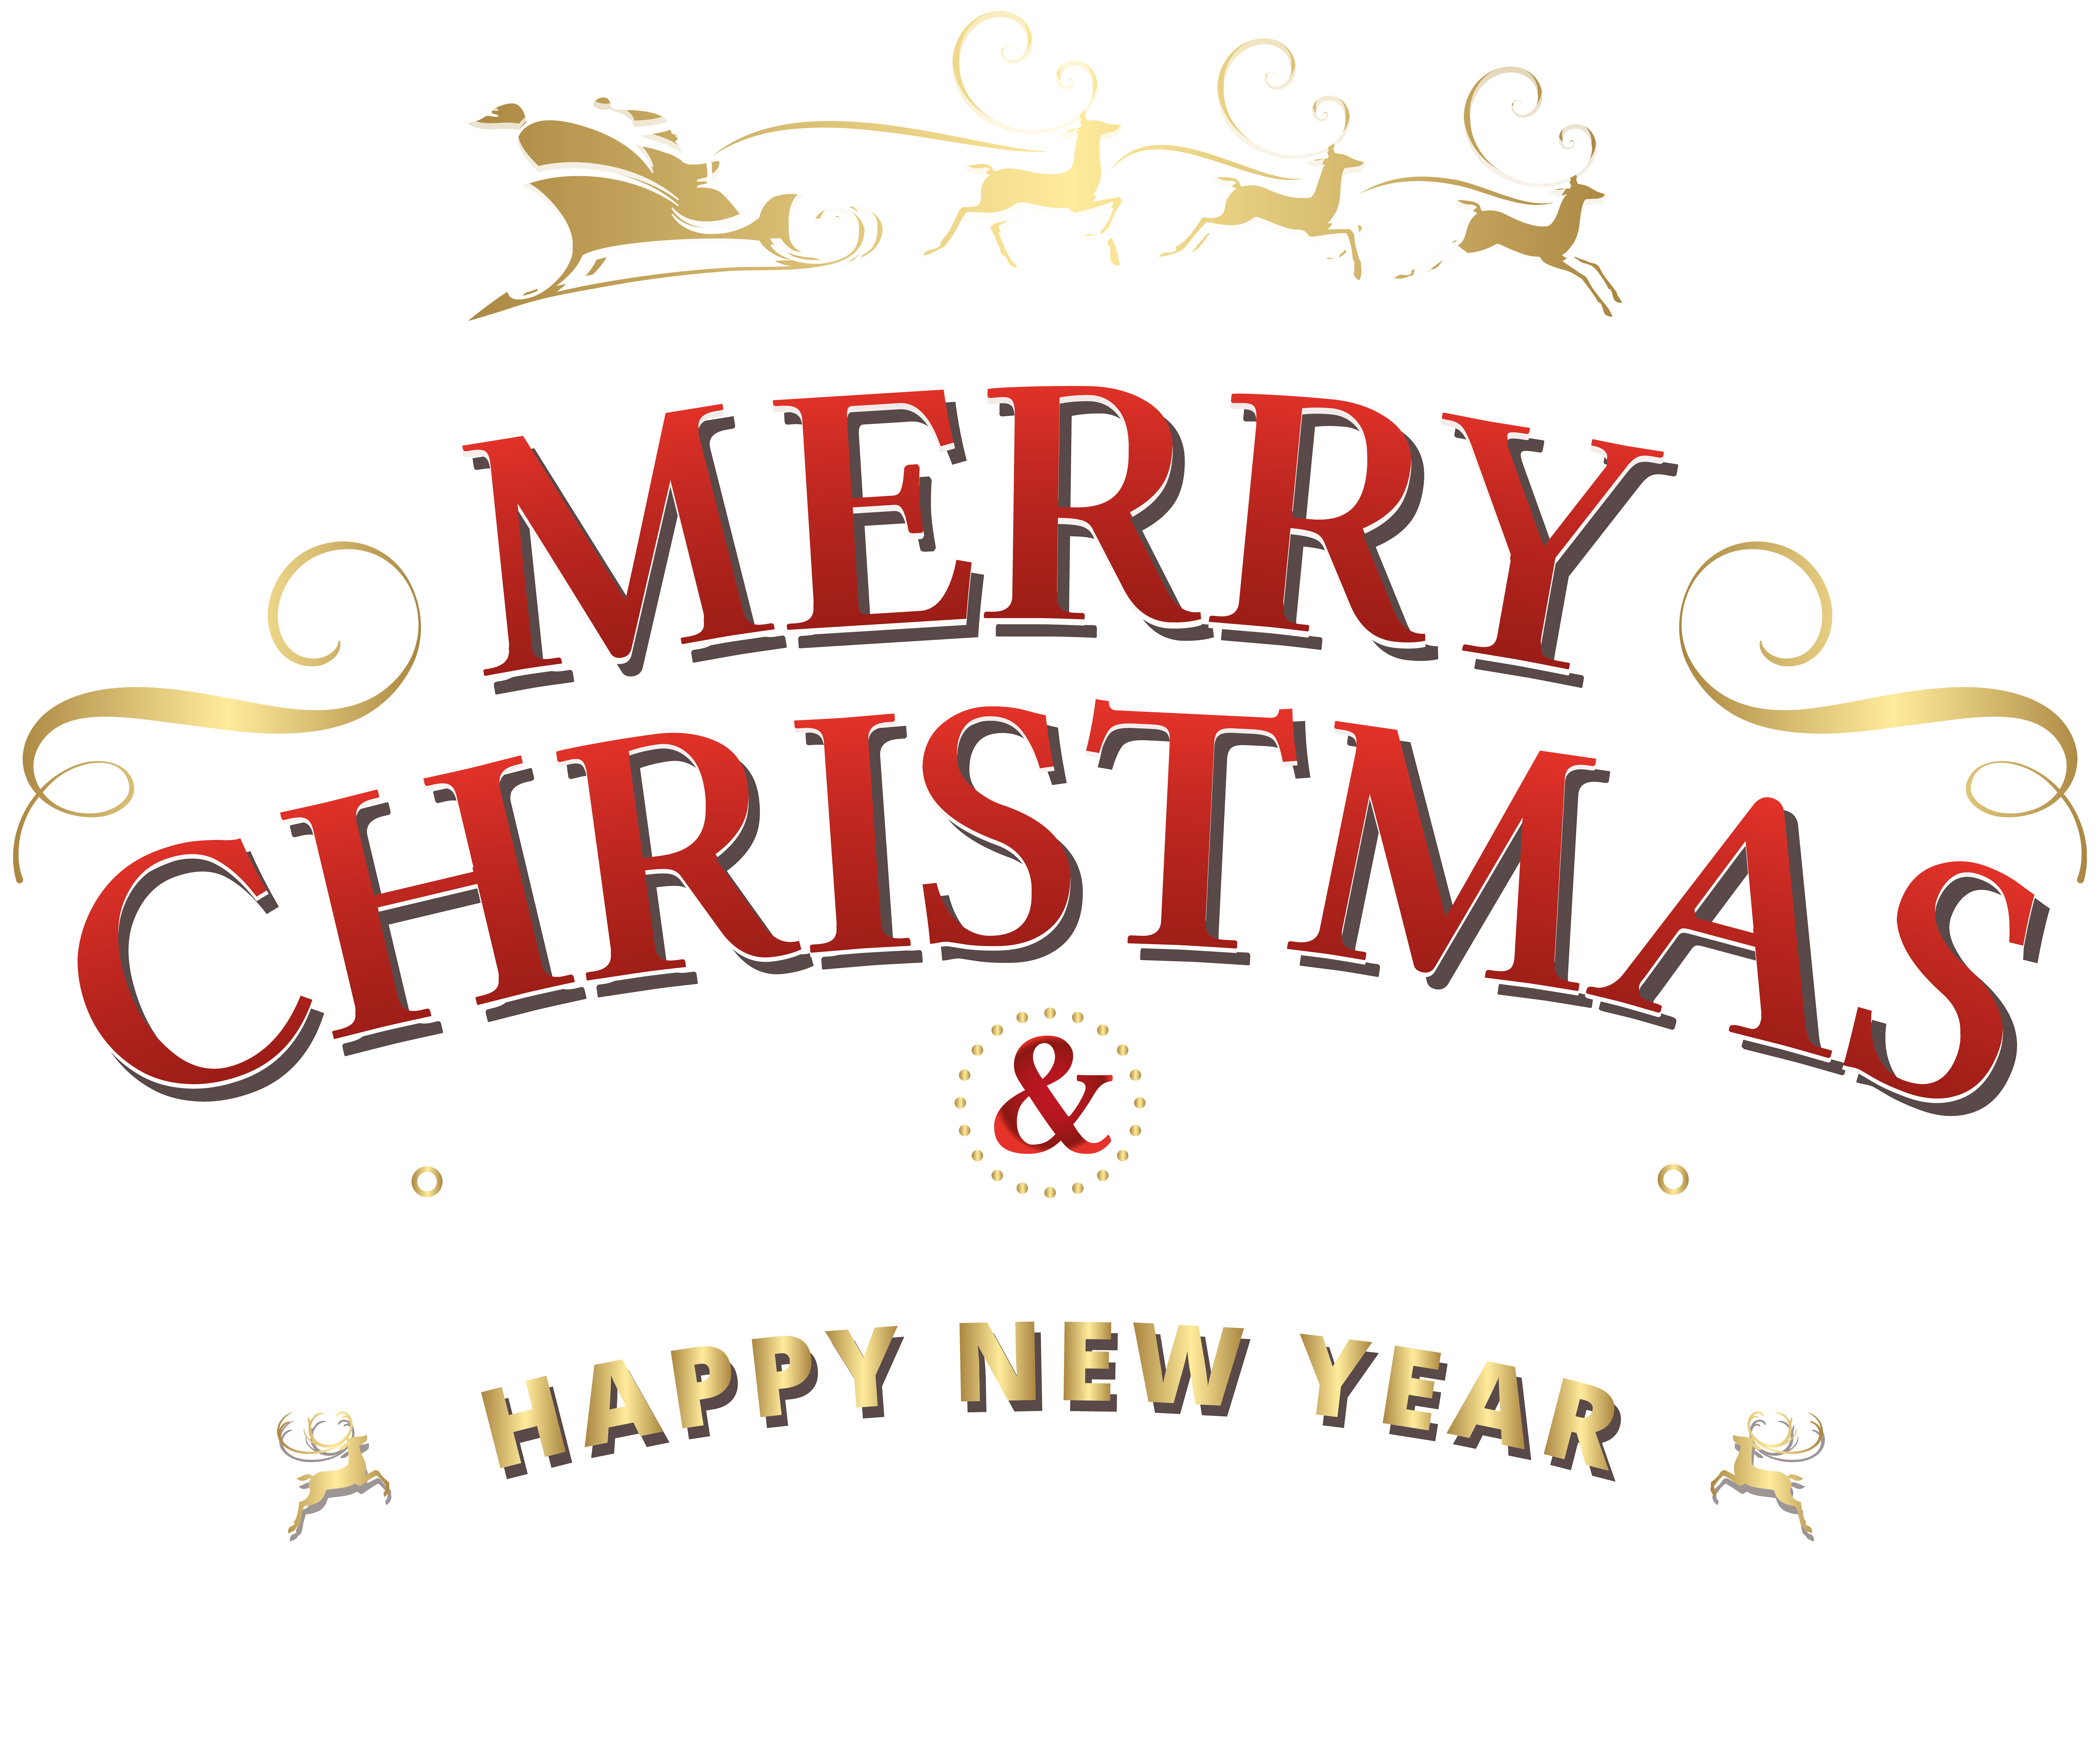 merry christmas text png merry christmas text christmas text merry christmas pinterest